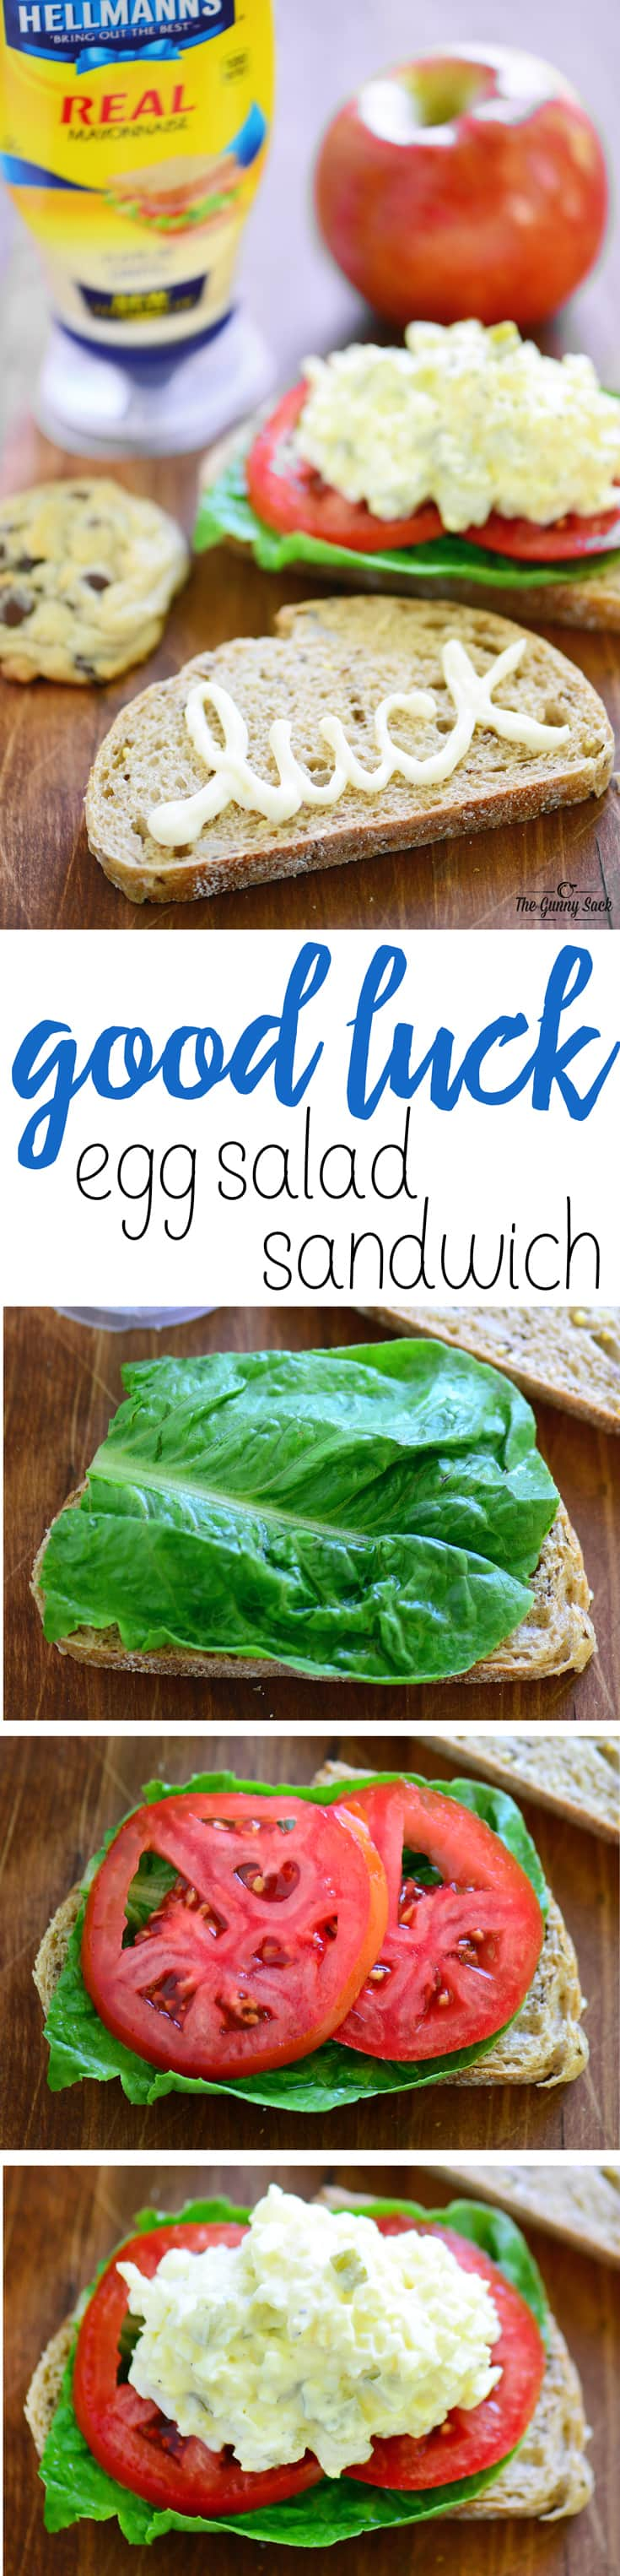 "Wish a loved one ""Good Luck"" with an Egg Salad Sandwich"